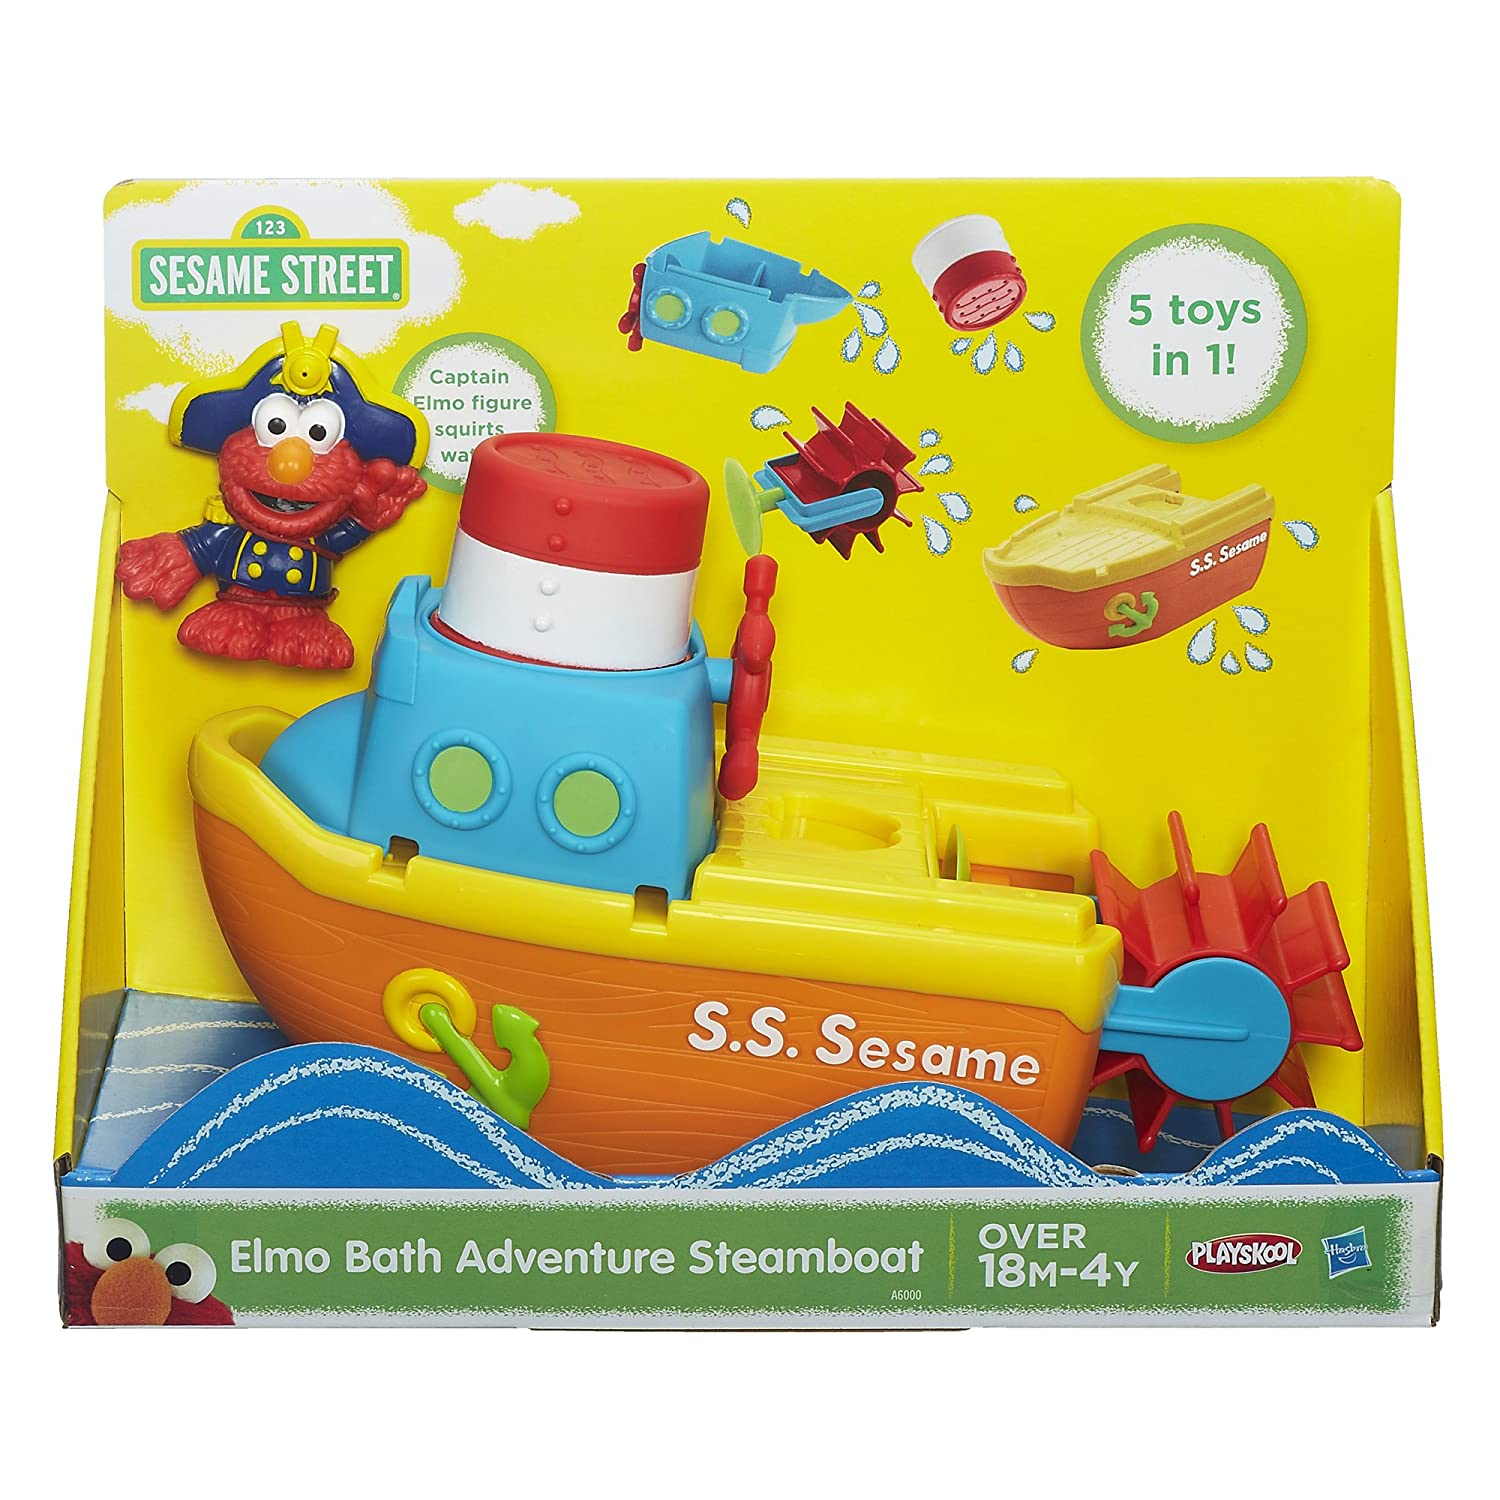 Amazon com  Playskool Sesame Street Elmo Bath Adventure Steamboat Toy  Toys    Games. Amazon com  Playskool Sesame Street Elmo Bath Adventure Steamboat